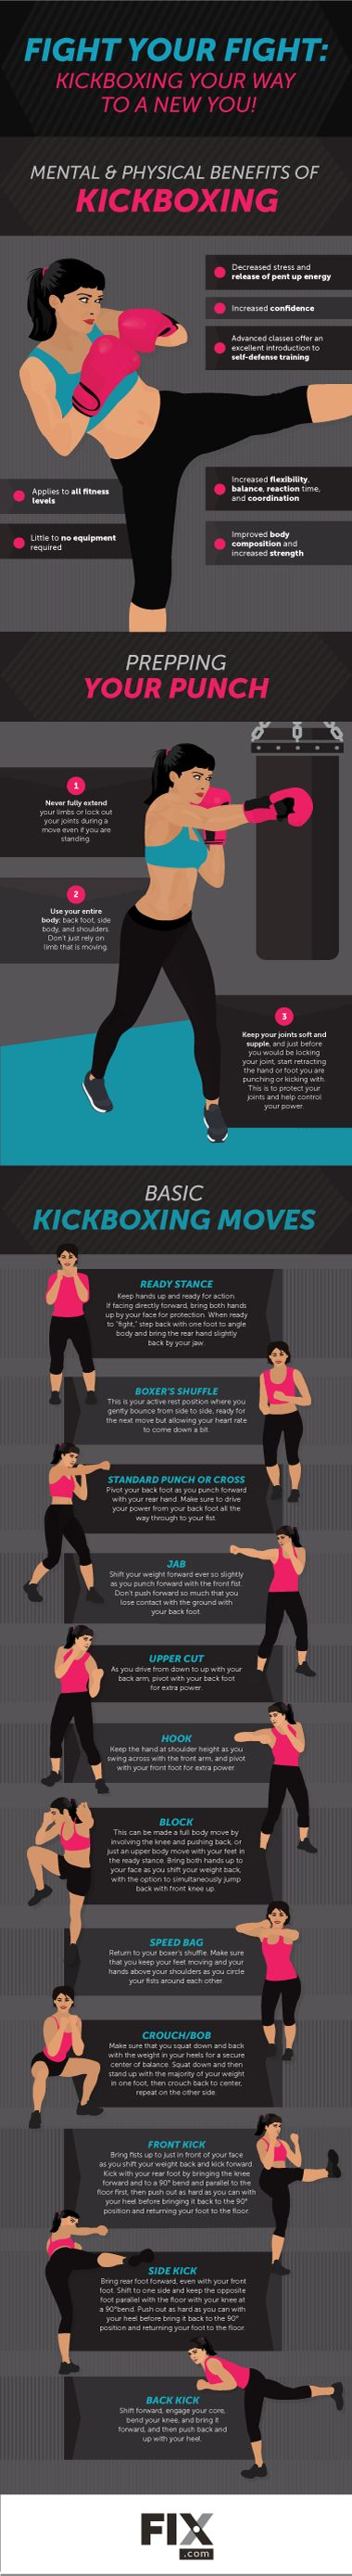 Kickboxing Style Workout Classes | Fix.com